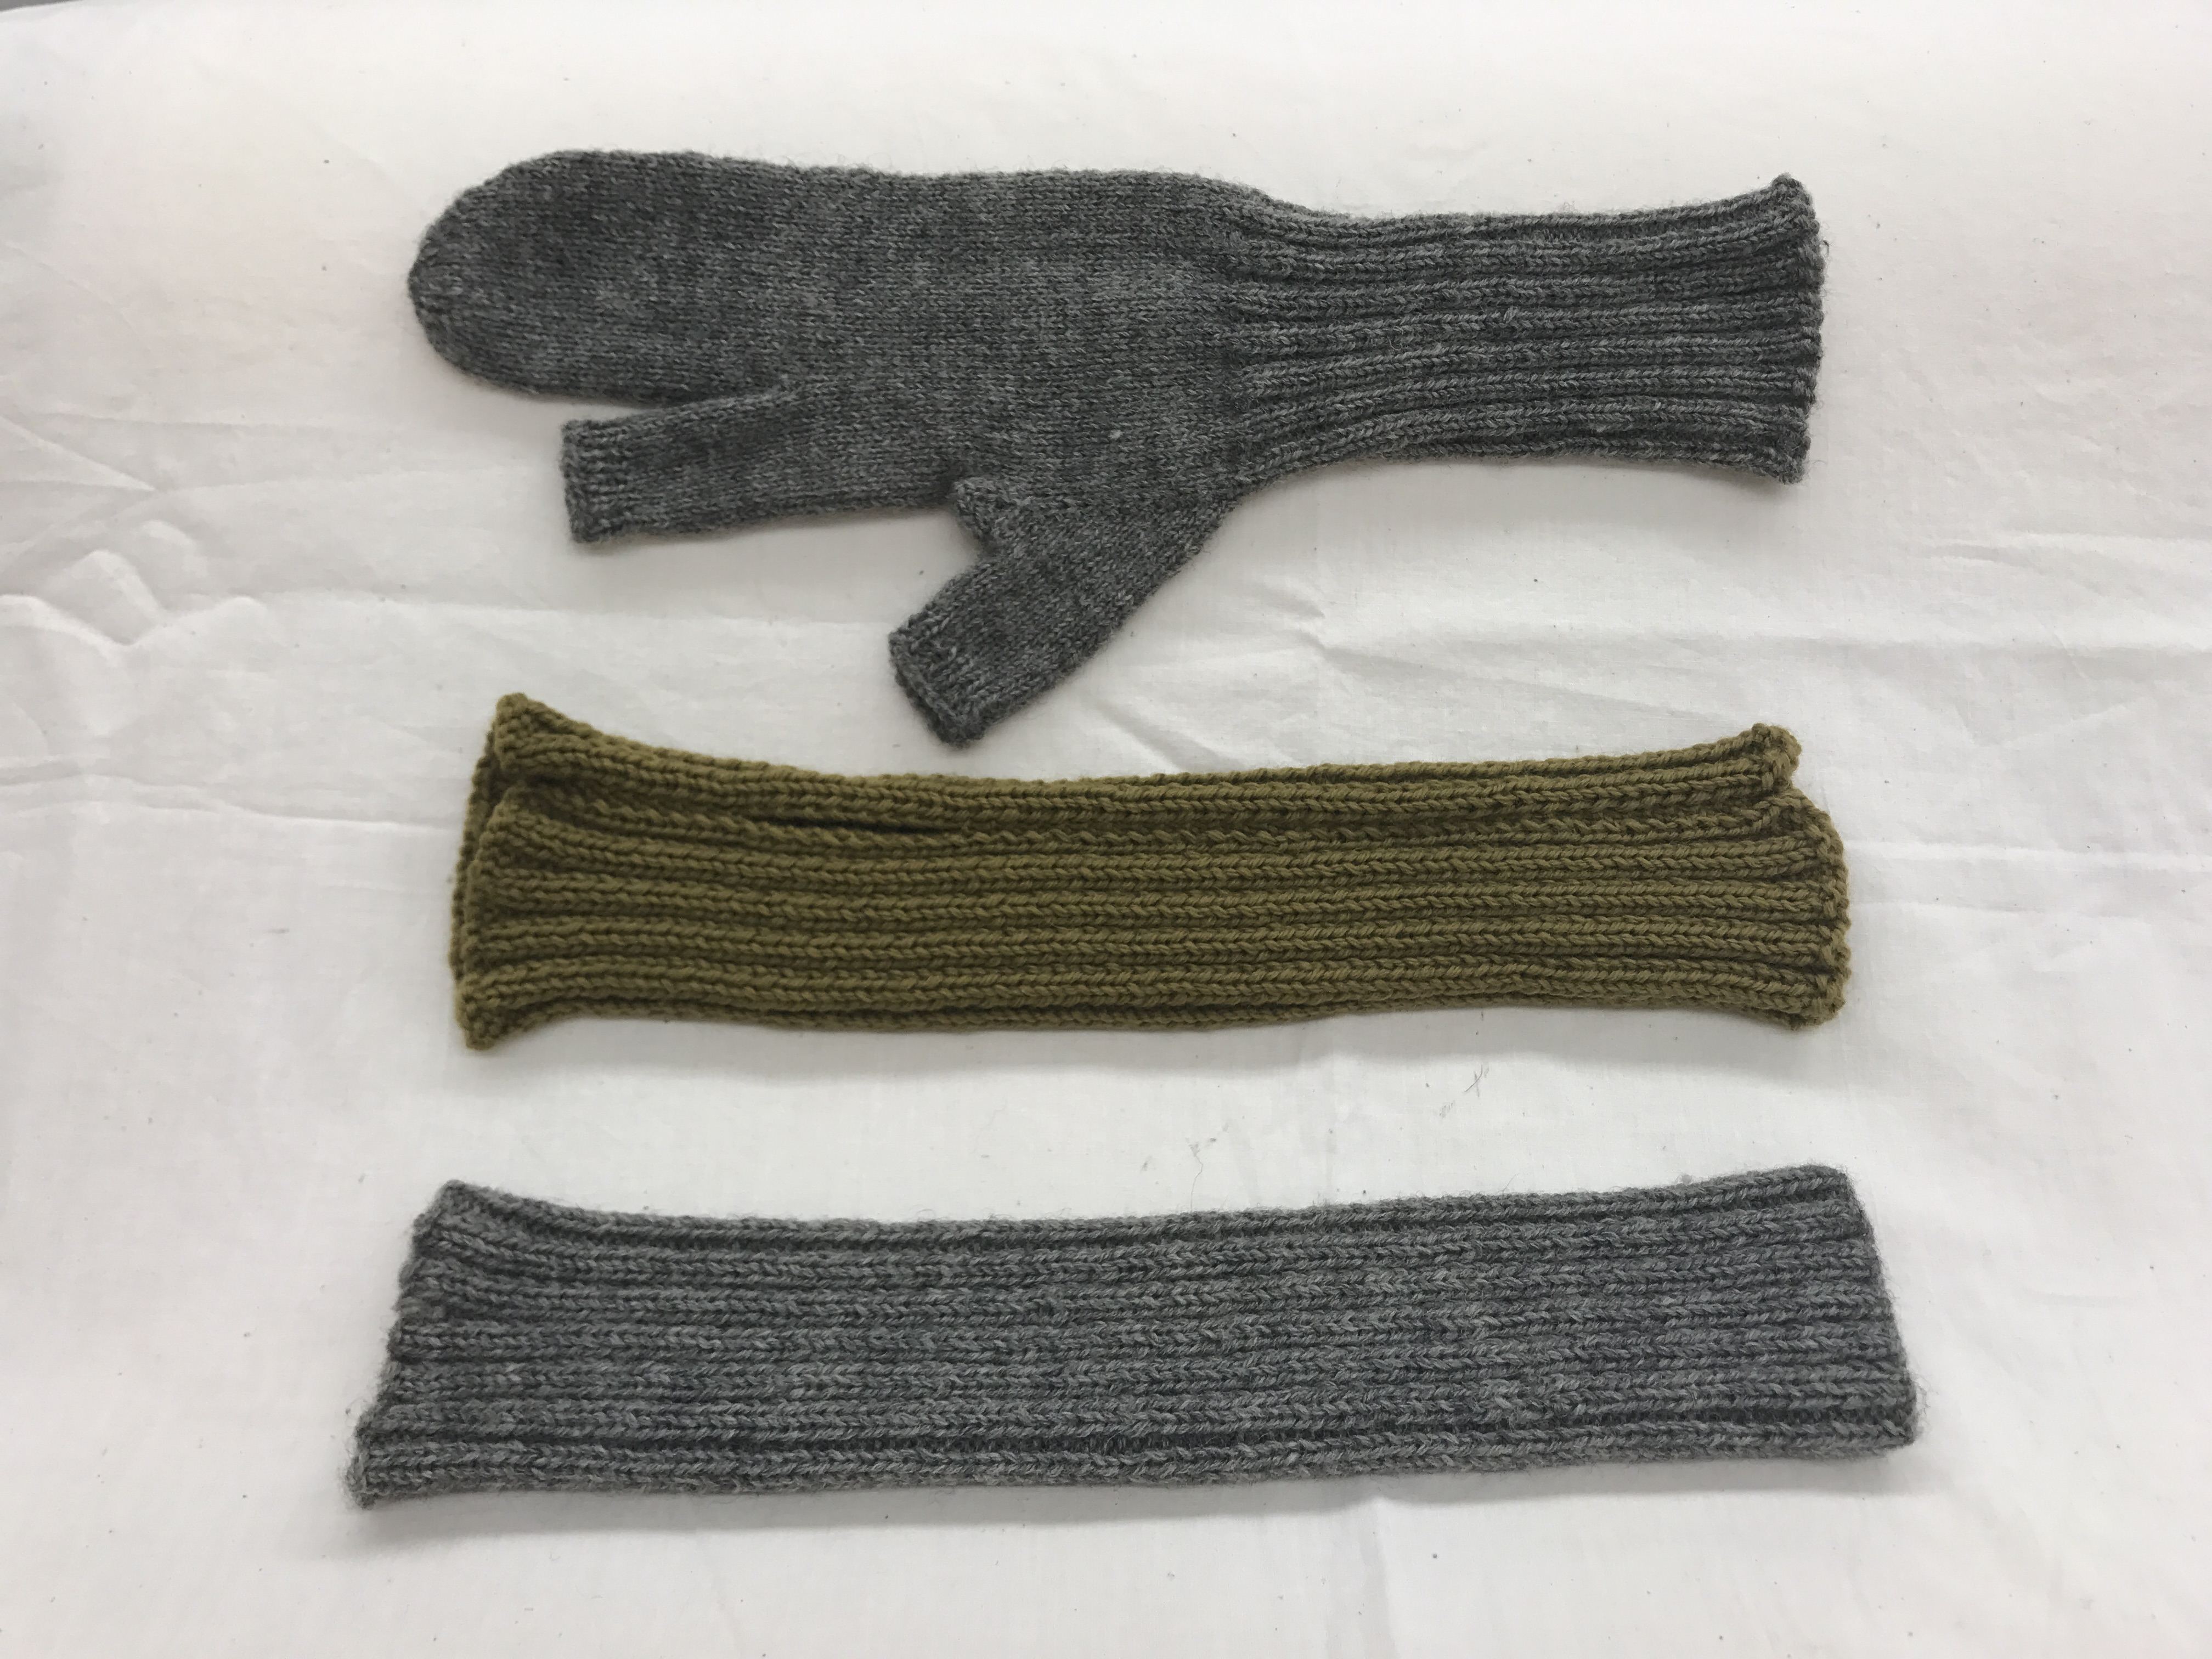 79c76904 Three knitted items in Army green and grey. One is mitten-shaped. Two